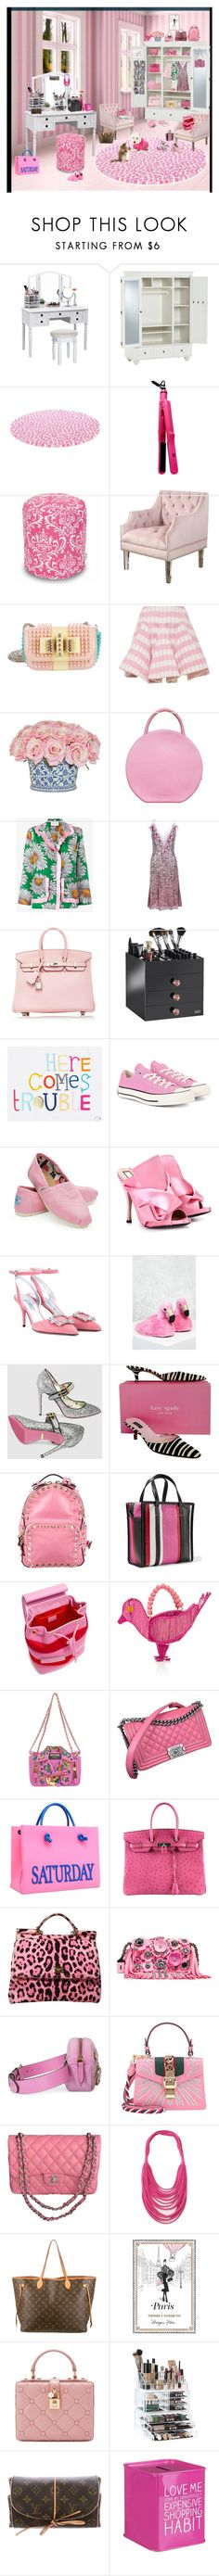 """Pink dressing room"" by deborah-518 ❤ liked on Polyvore featuring interior, interiors, interior design, home, home decor, interior decorating, PBteen, Brilliance New York, Abbyson Living and Christian Louboutin"